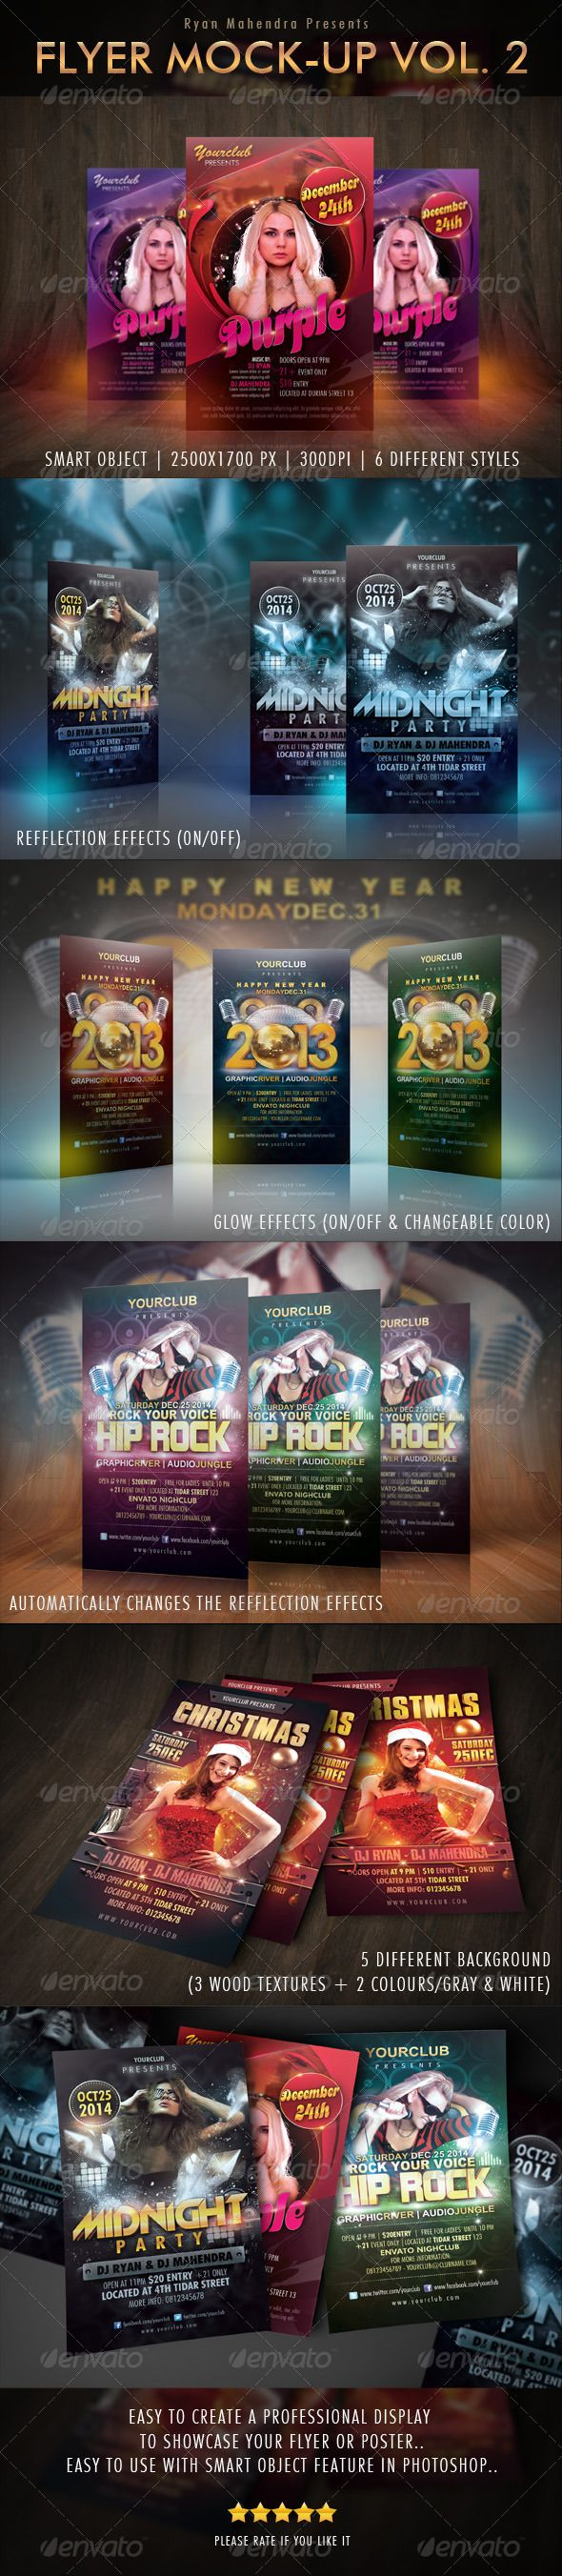 Flyer Mock-Up Vol. 2  #GraphicRiver         Flyer Mock-Up Vol. 2   Easy to create a professional display to showcase your flyer or poster. Easy to use with smart object feature in photoshop. PDF help file is included.  Features :   Smart Object  Fully layered PSD  6 different styles  2500×1700 pixels 300 DPI   Glow Effects (on/off & changeable color)  Reflection Effects (on/off)  5 Different Backgrounds (3 wood textures + 2 colours / gray & white)  Files included :   6 layered PSD files (2500×1700PX 300 DPI )  PDF help file  readme text   Flyers in preview can be purchased here :   graphicriver /item/purple-party-flyer/3307859?ref=ryanmahendra  graphicriver /item/midnight-party-flyer/3337687?ref=ryanmahendra  graphicriver /item/happy-new-year-flyer-template/3638696?ref=ryanmahendra  graphicriver /item/hip-rock-flyer-template/3641193?ref=ryanmahendra  graphicriver /item/christmas-party-flyer/3290294?ref=ryanmahendra      Created: 25March13 GraphicsFilesIncluded: PhotoshopPSD HighResolution: Yes Layered: Yes MinimumAdobeCSVersion: CS5 PixelDimensions: 2500x1700 Tags: 3d #brochure #dark #display #displayer #effect #effects #element #flyer #flyermock-up #flyermockup #glow #mock-up #mock-ups #mockup #mockups #poster #professional #showoff #showcase #template